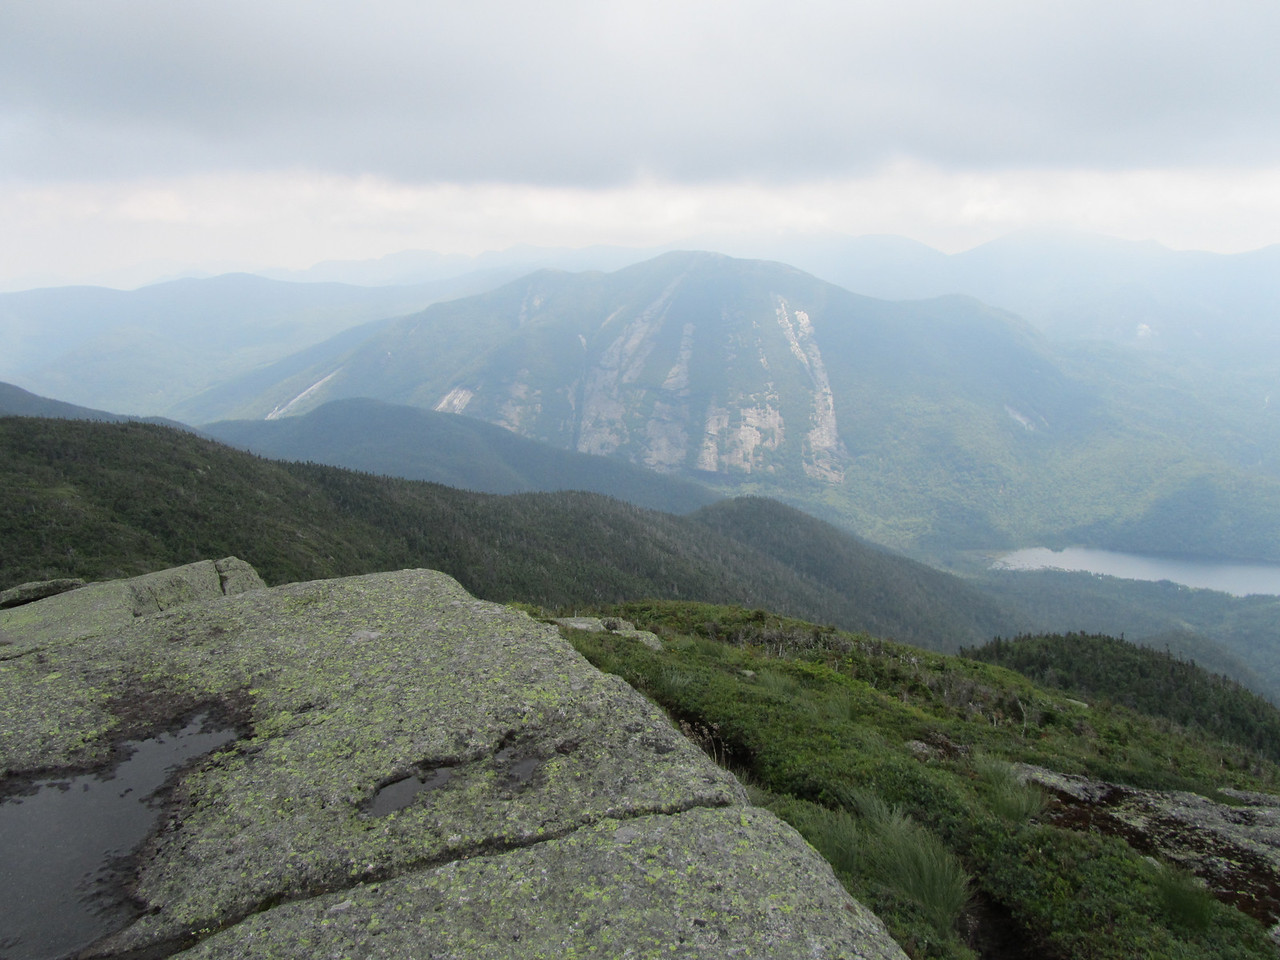 On the summit of Algonquin. Clouds moving in.